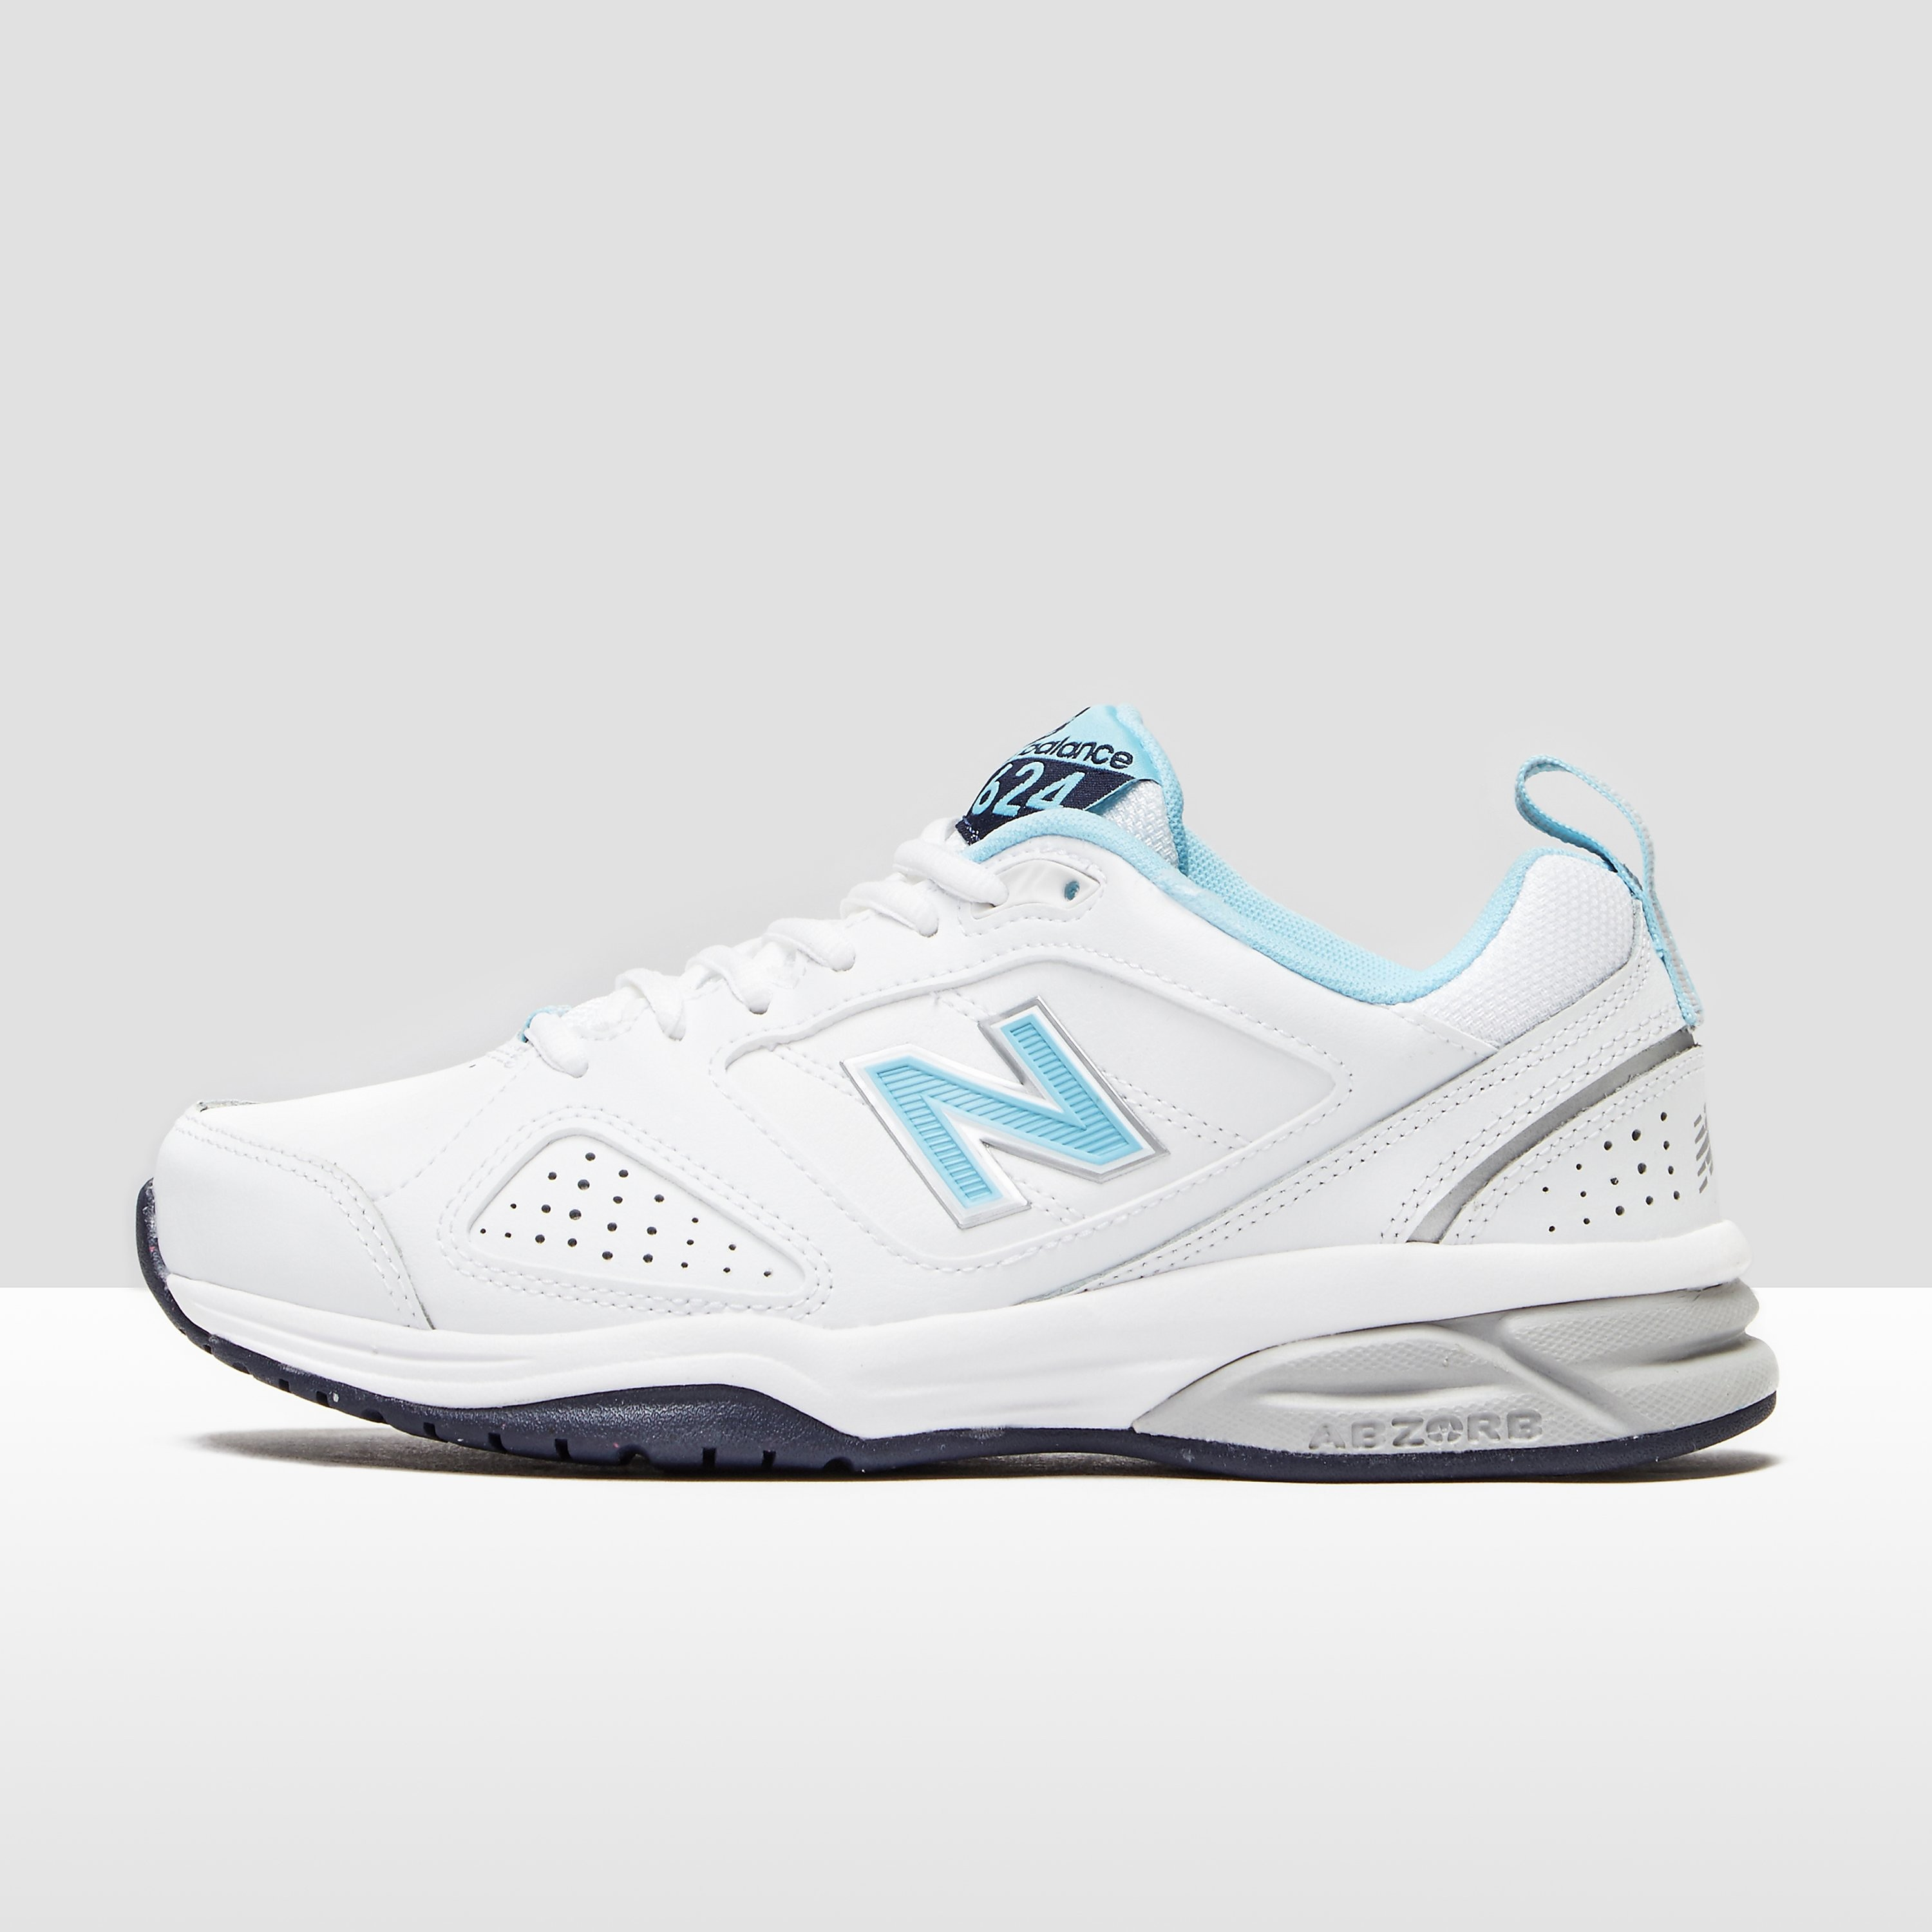 New Balance 624v4 Fitness Shoes